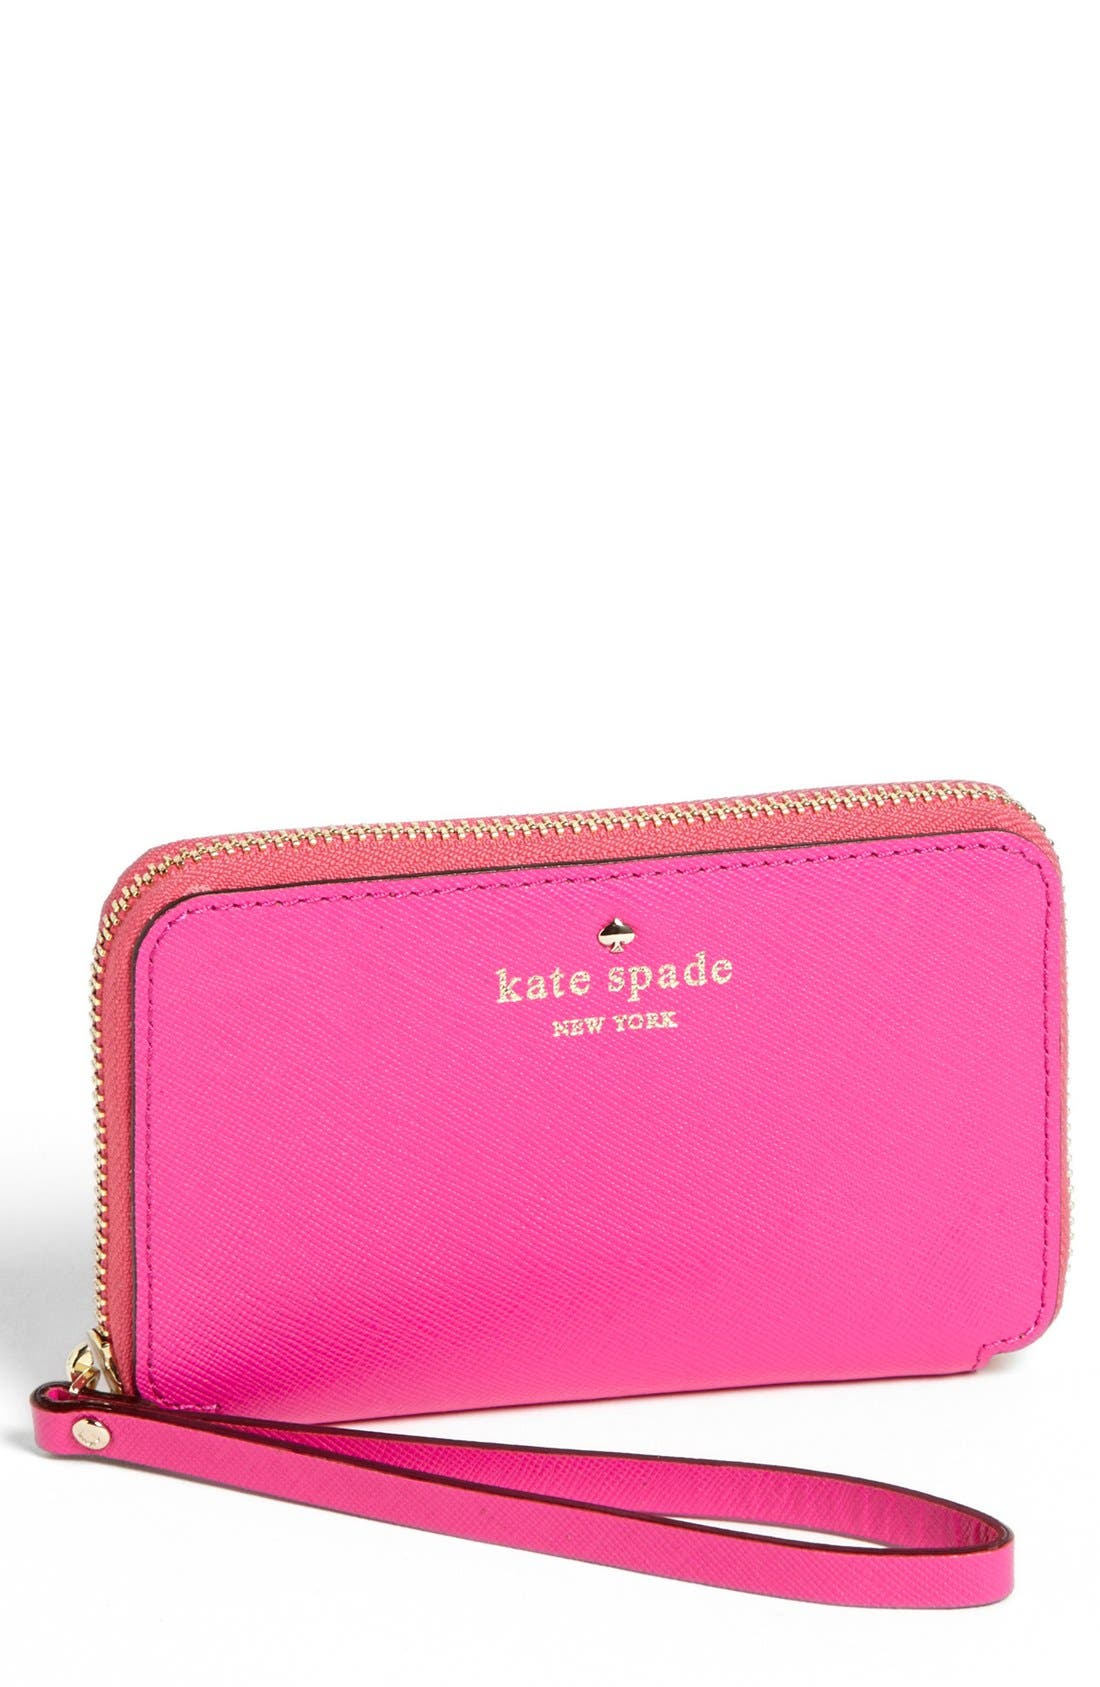 Alternate Image 1 Selected - kate spade new york 'cherry lane - louie' saffiano leather phone wallet